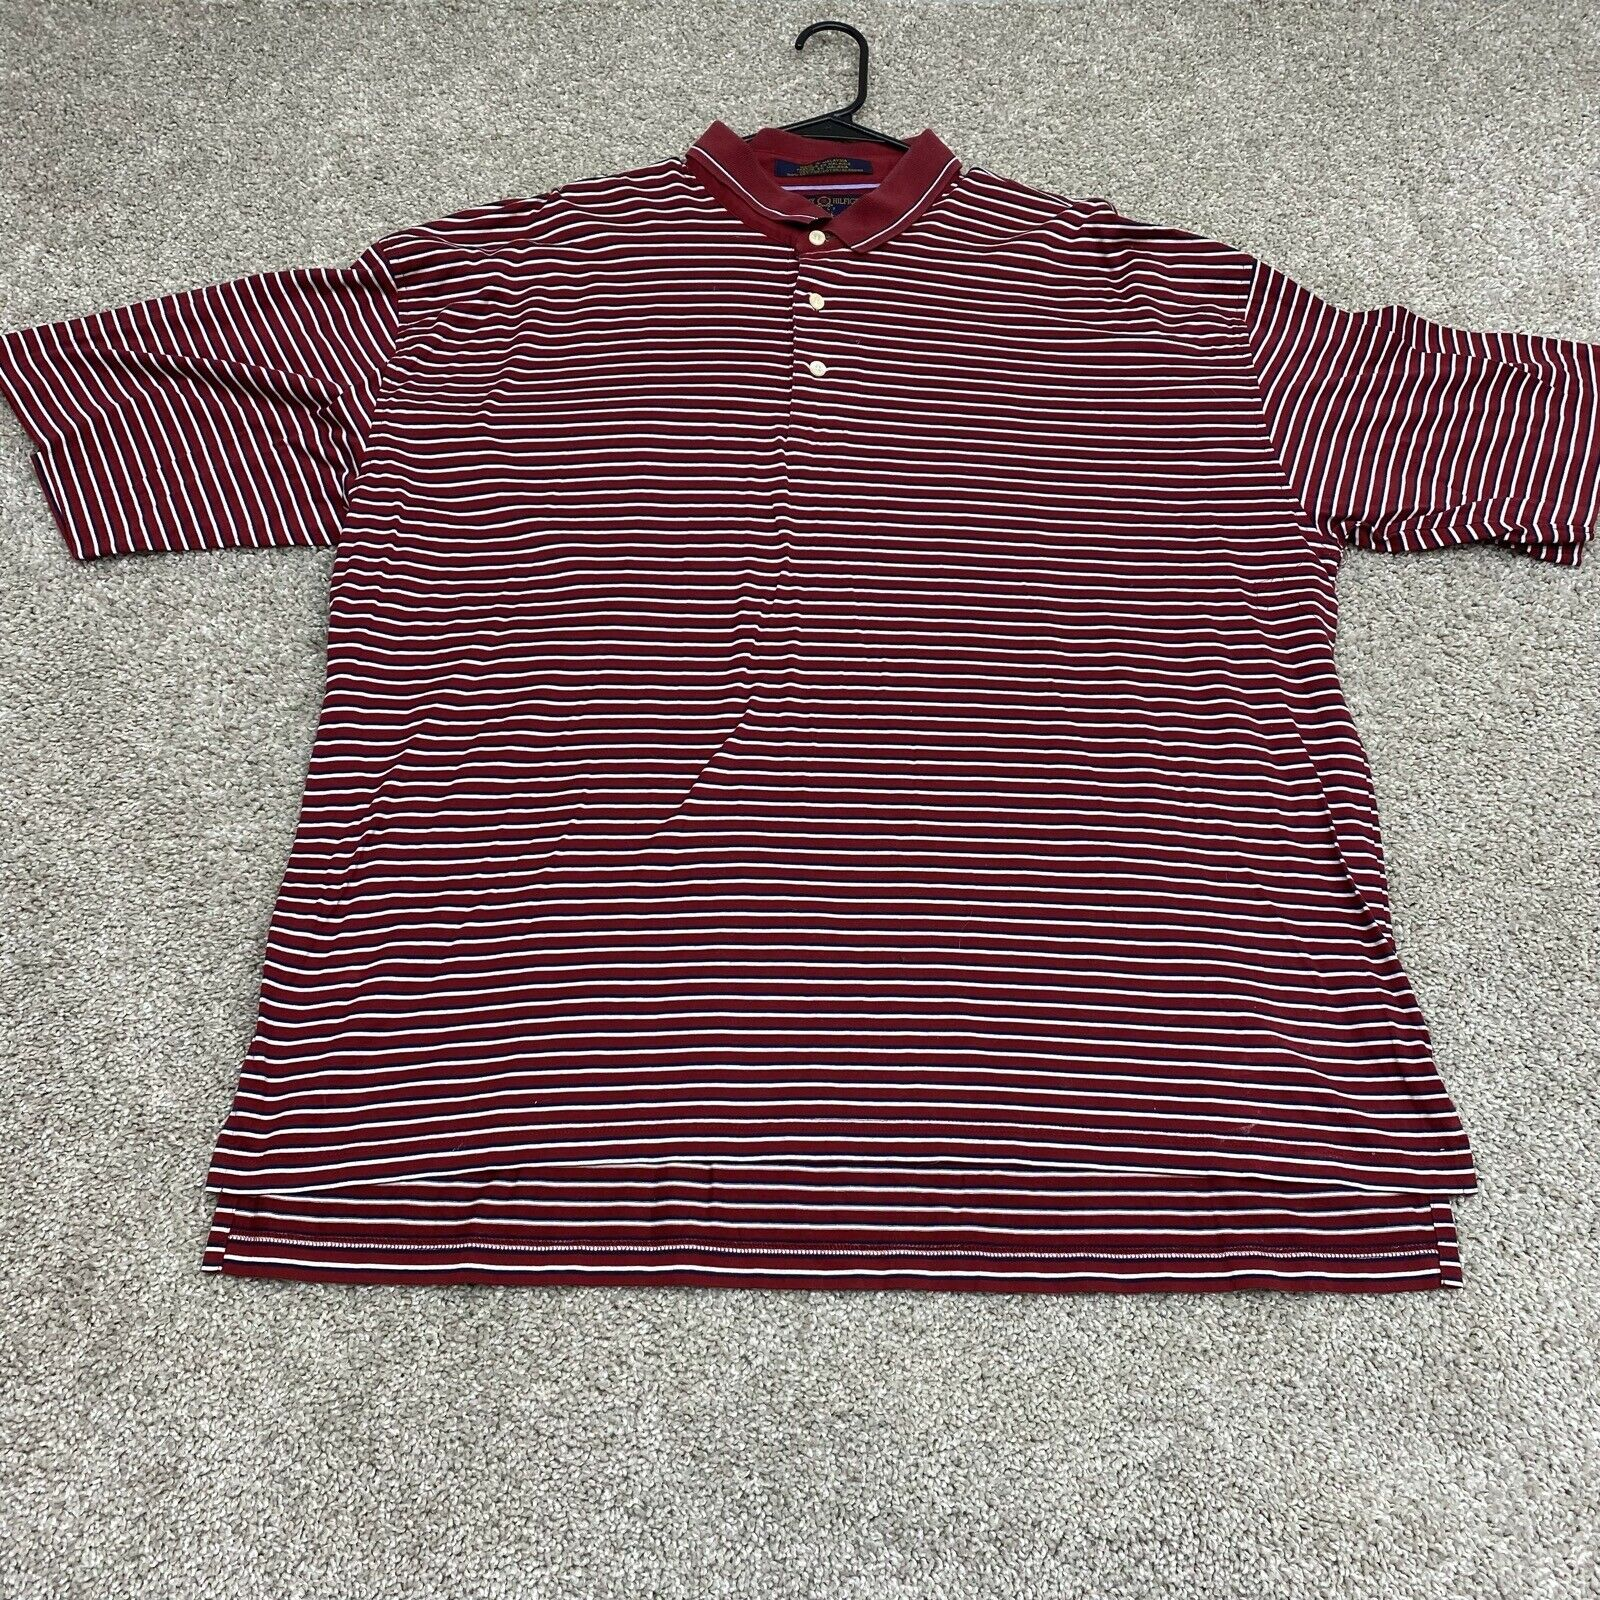 Product Image 1 - Tommy Hilfiger Shirt Adult 2XL